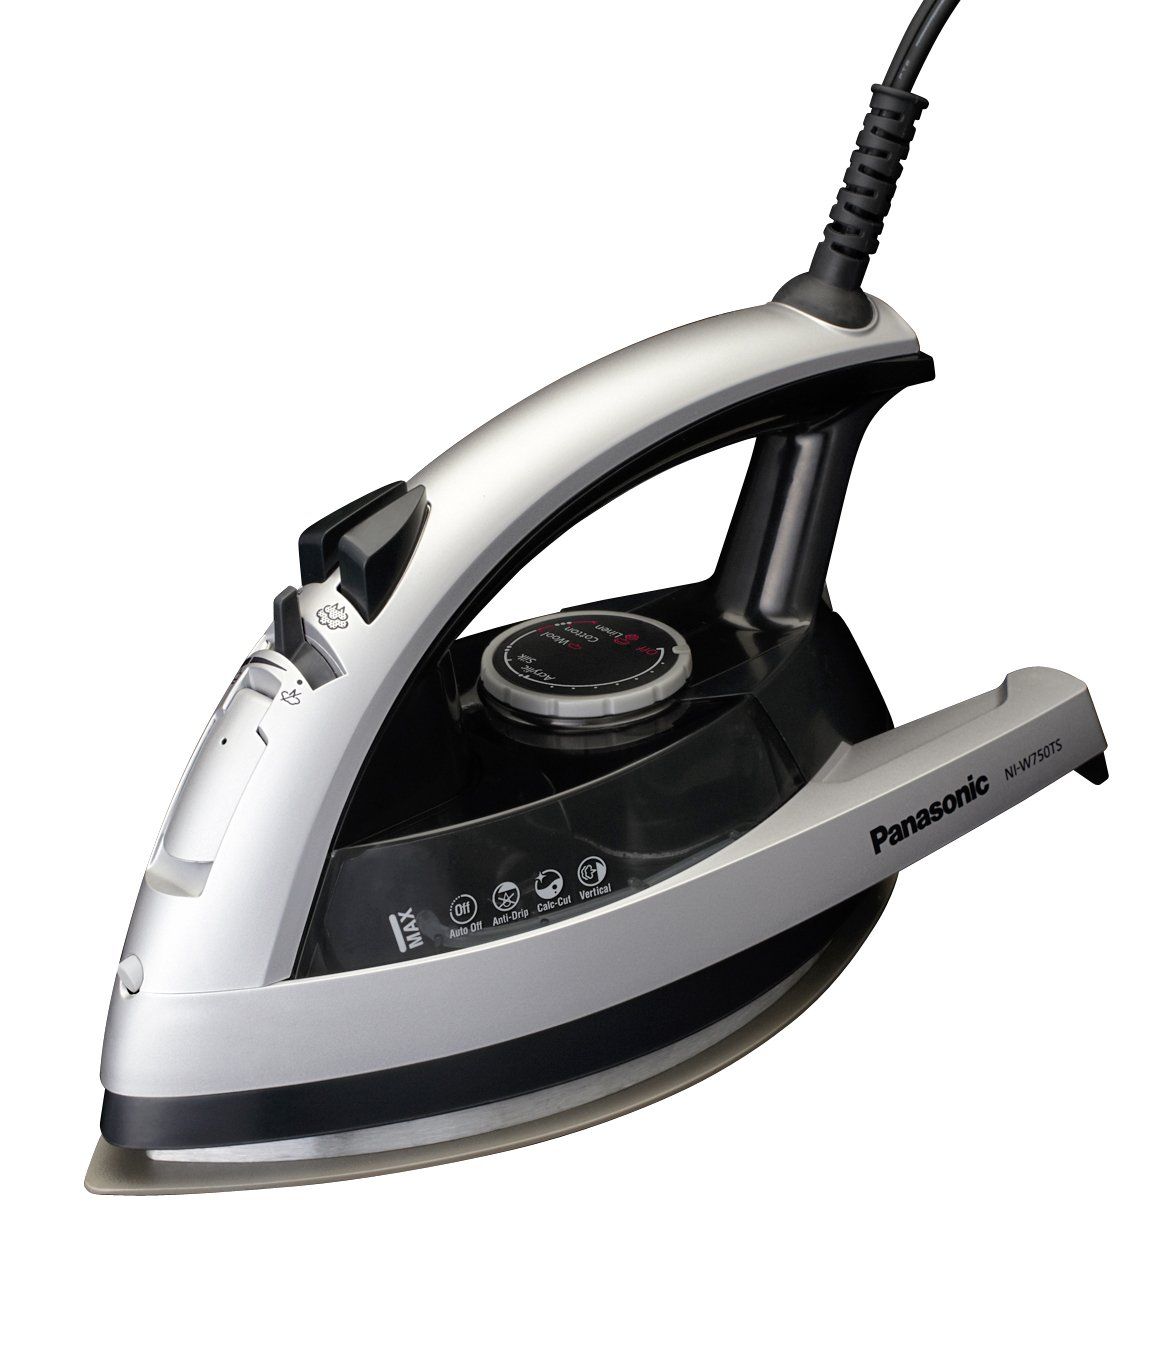 Panasonic NI-W750TS 360-Degree Quick Multi-Directional Steam Iron, Silver and Black Pan Stanford Publishing